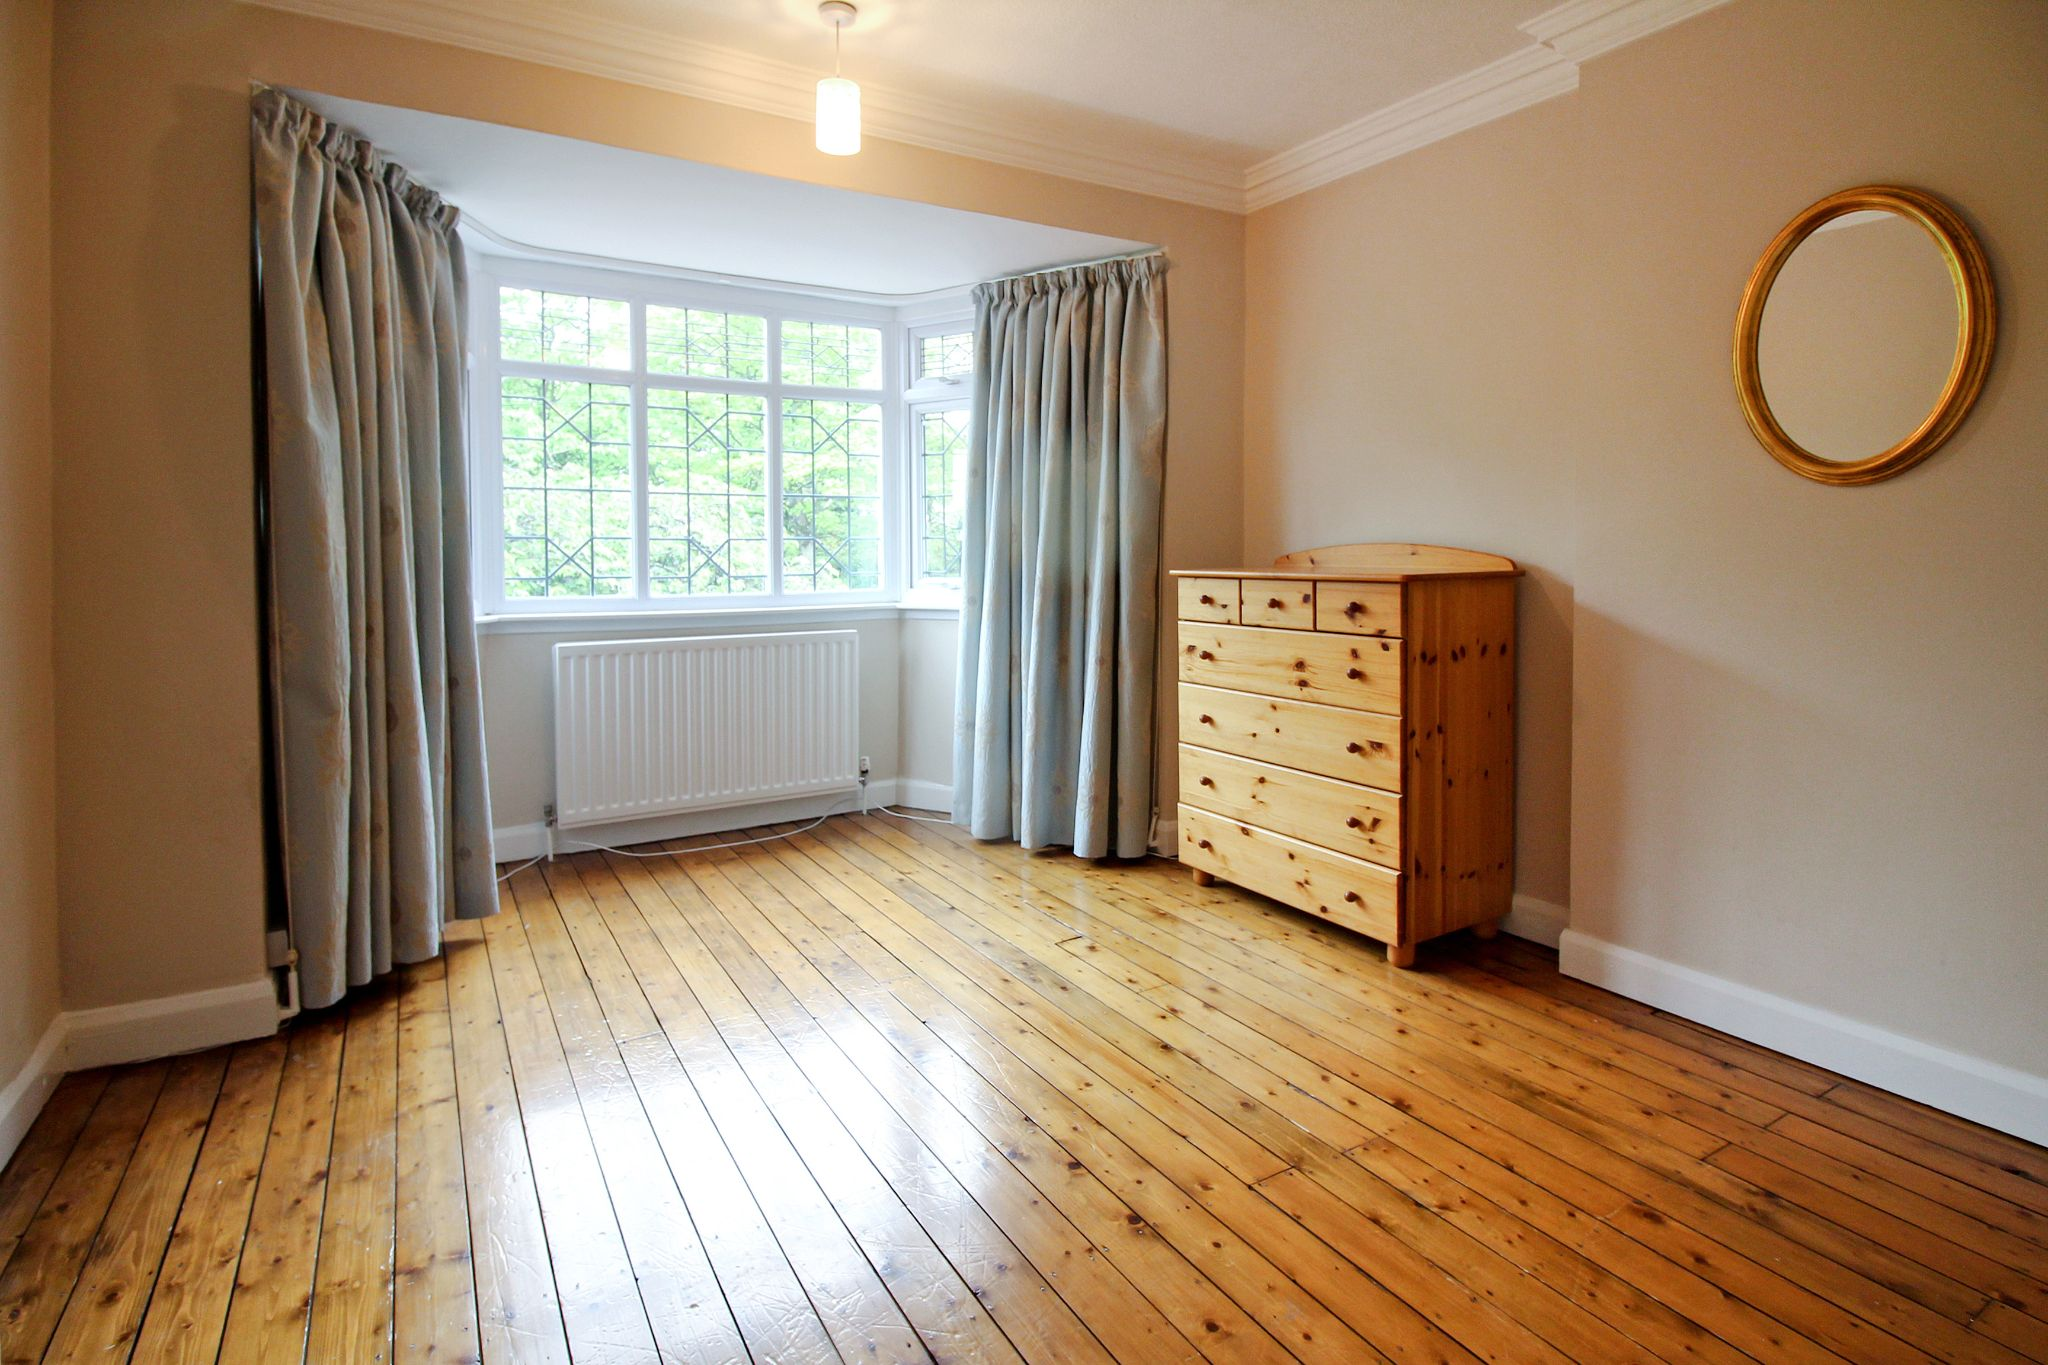 4 bedroom semi-detached house SSTC in Solihull - Photograph 10.